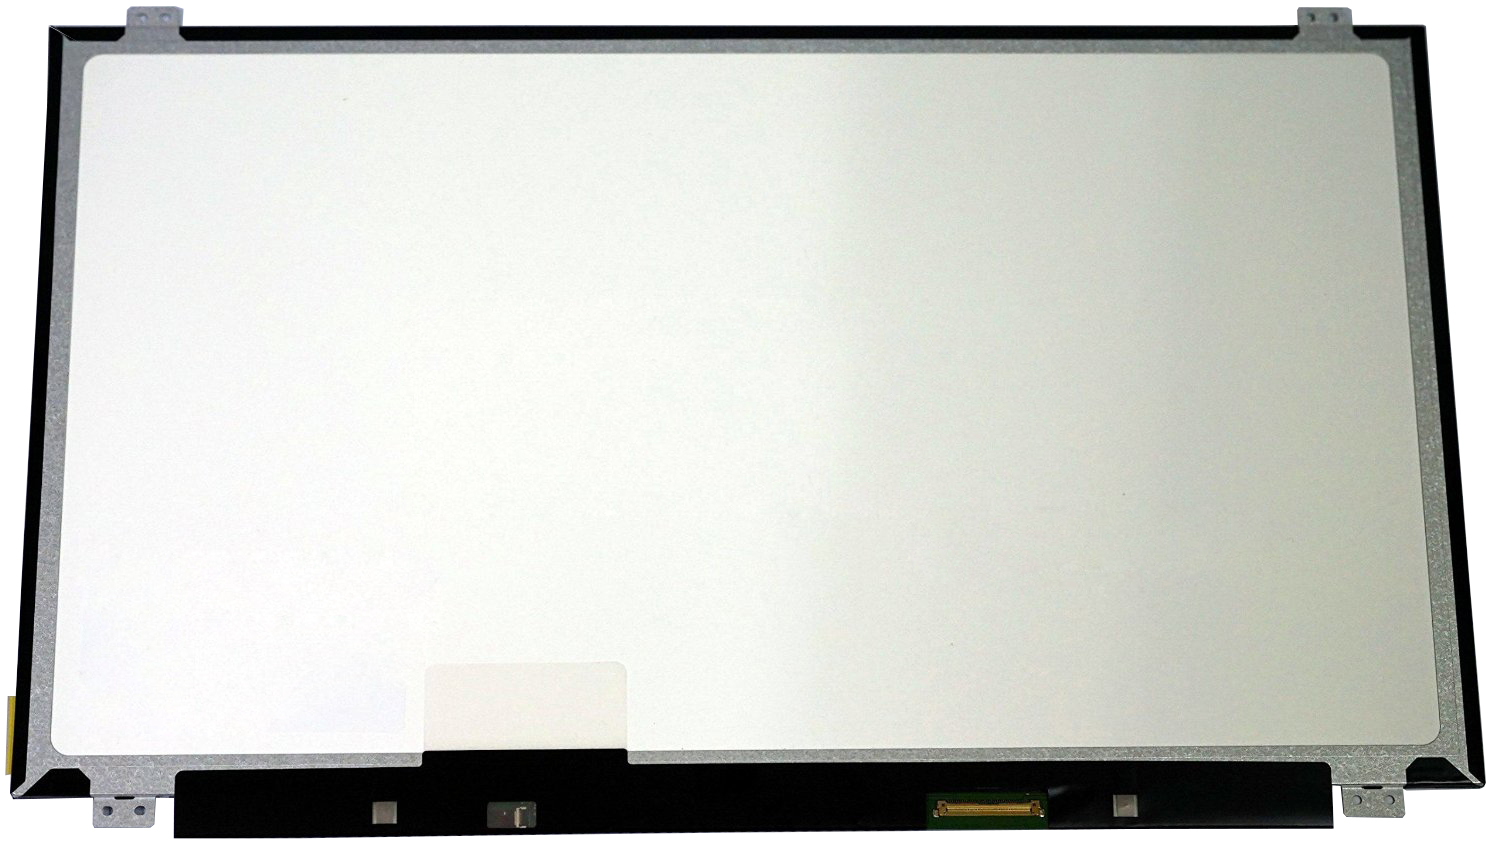 QuYing Laptop LCD Screen for Acer ASPIRE E5-471P SERIES (14.0 inch 1366x768 40pin) quying laptop lcd screen for acer aspire 7745z 7741 7741g 7741zg 7741z series 17 3 inch 1600x900 40pin